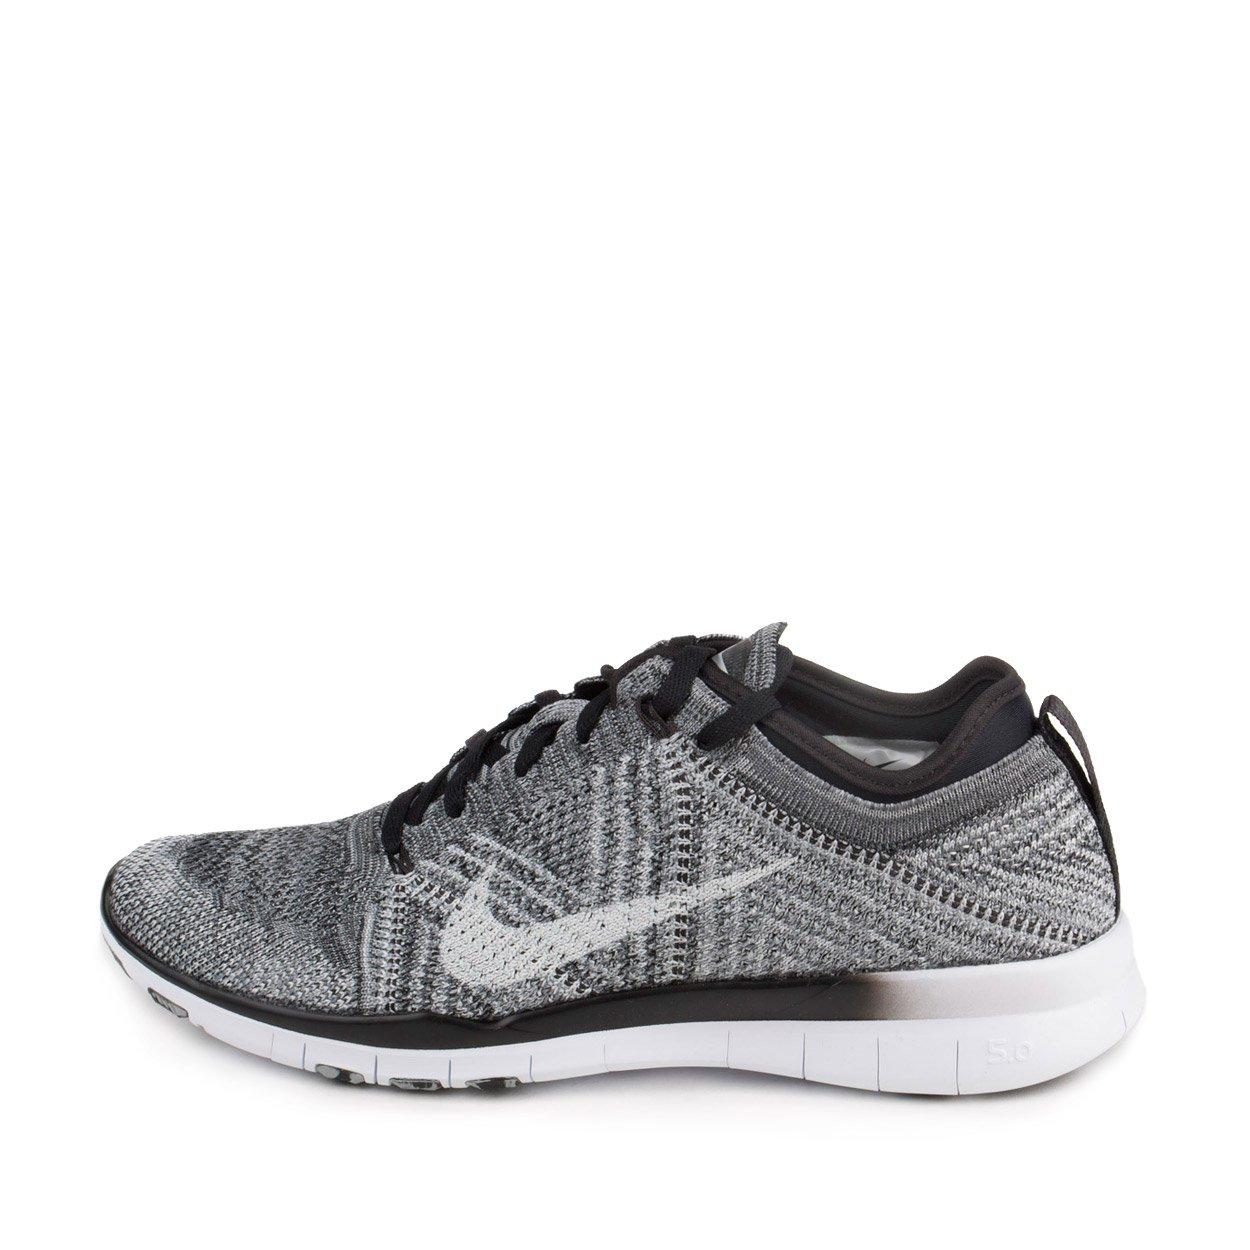 7db6a6b3eda3 Galleon - Nike Womens WMNS Free TR Flyknit Black White-Wolf Grey Fabric  Size 9.5